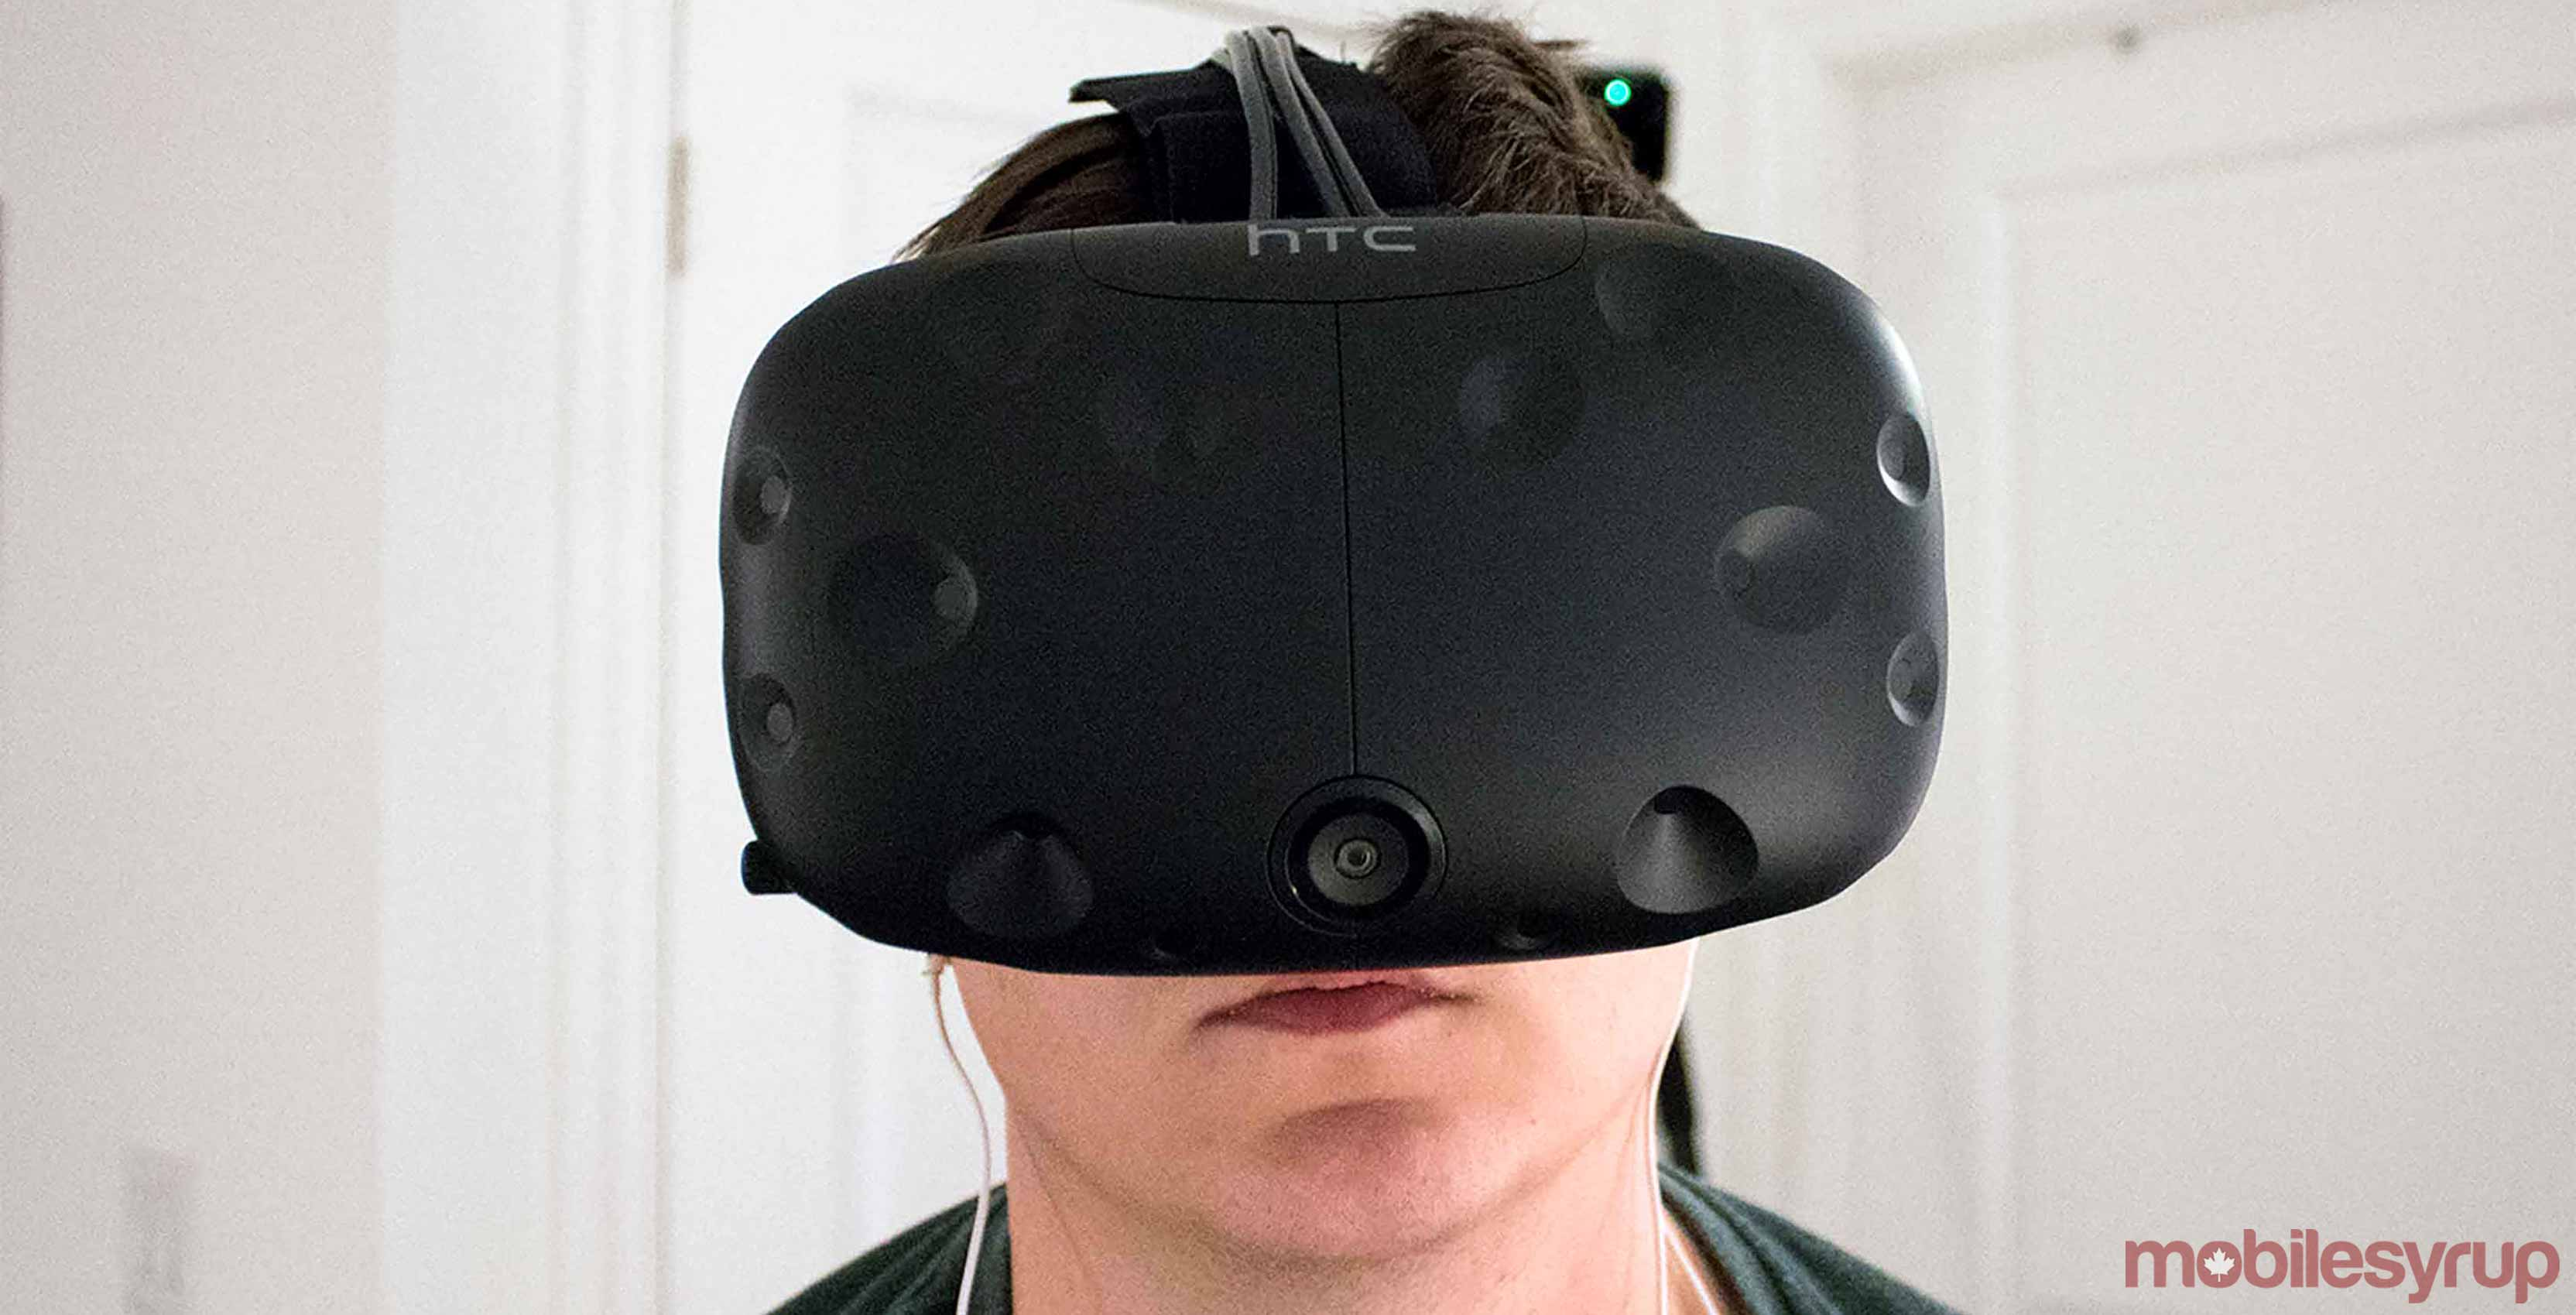 HTC Vive on head